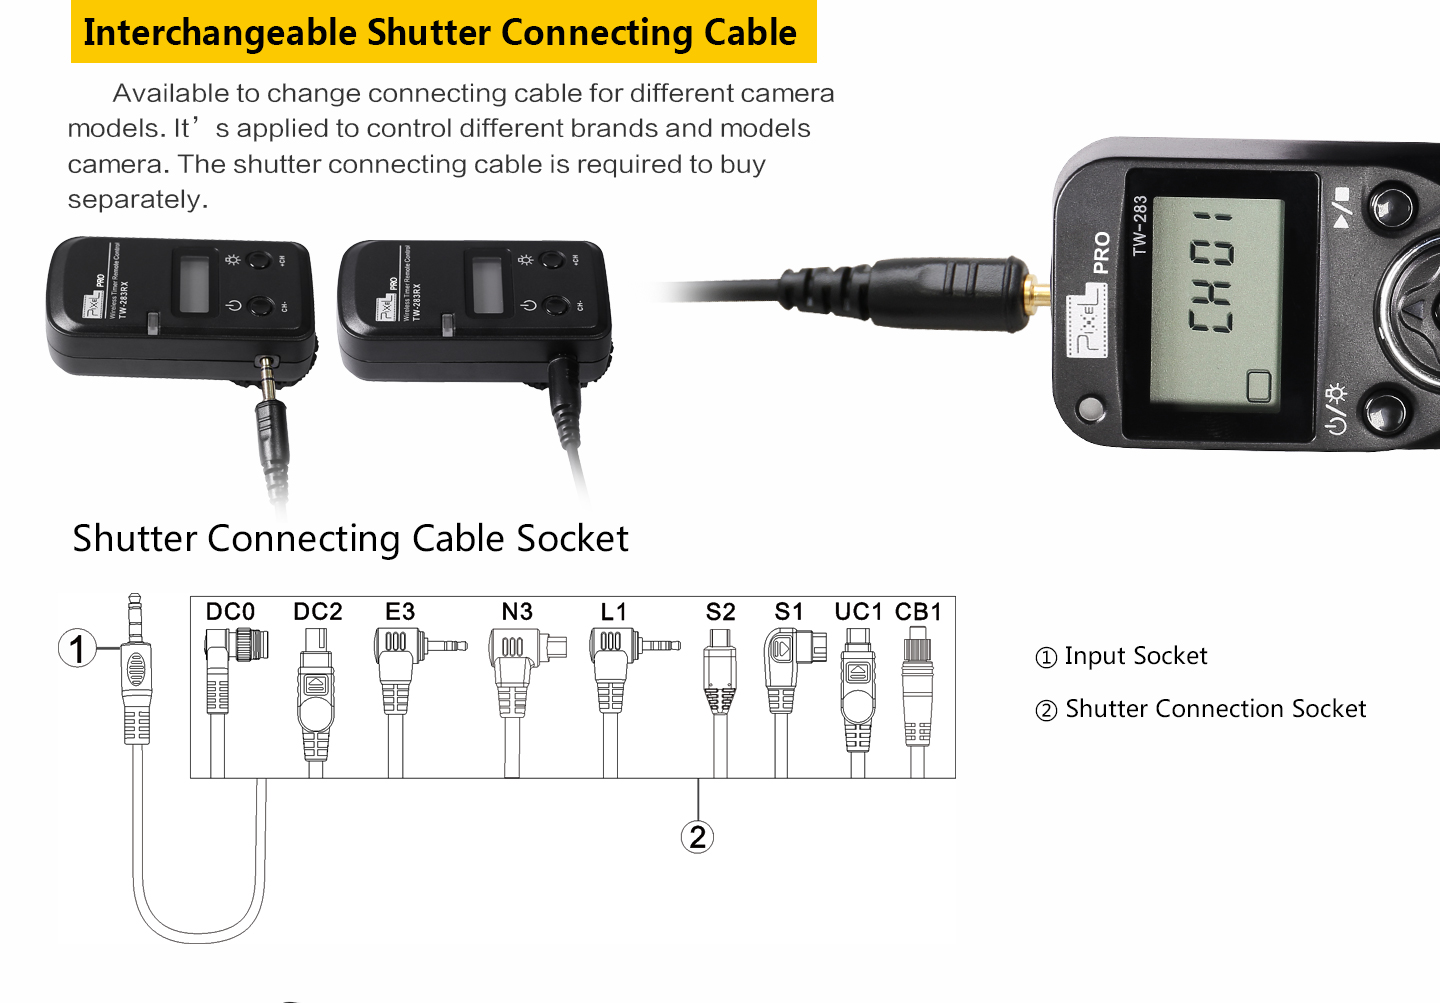 Interchangeable Shutter Connecting Cable